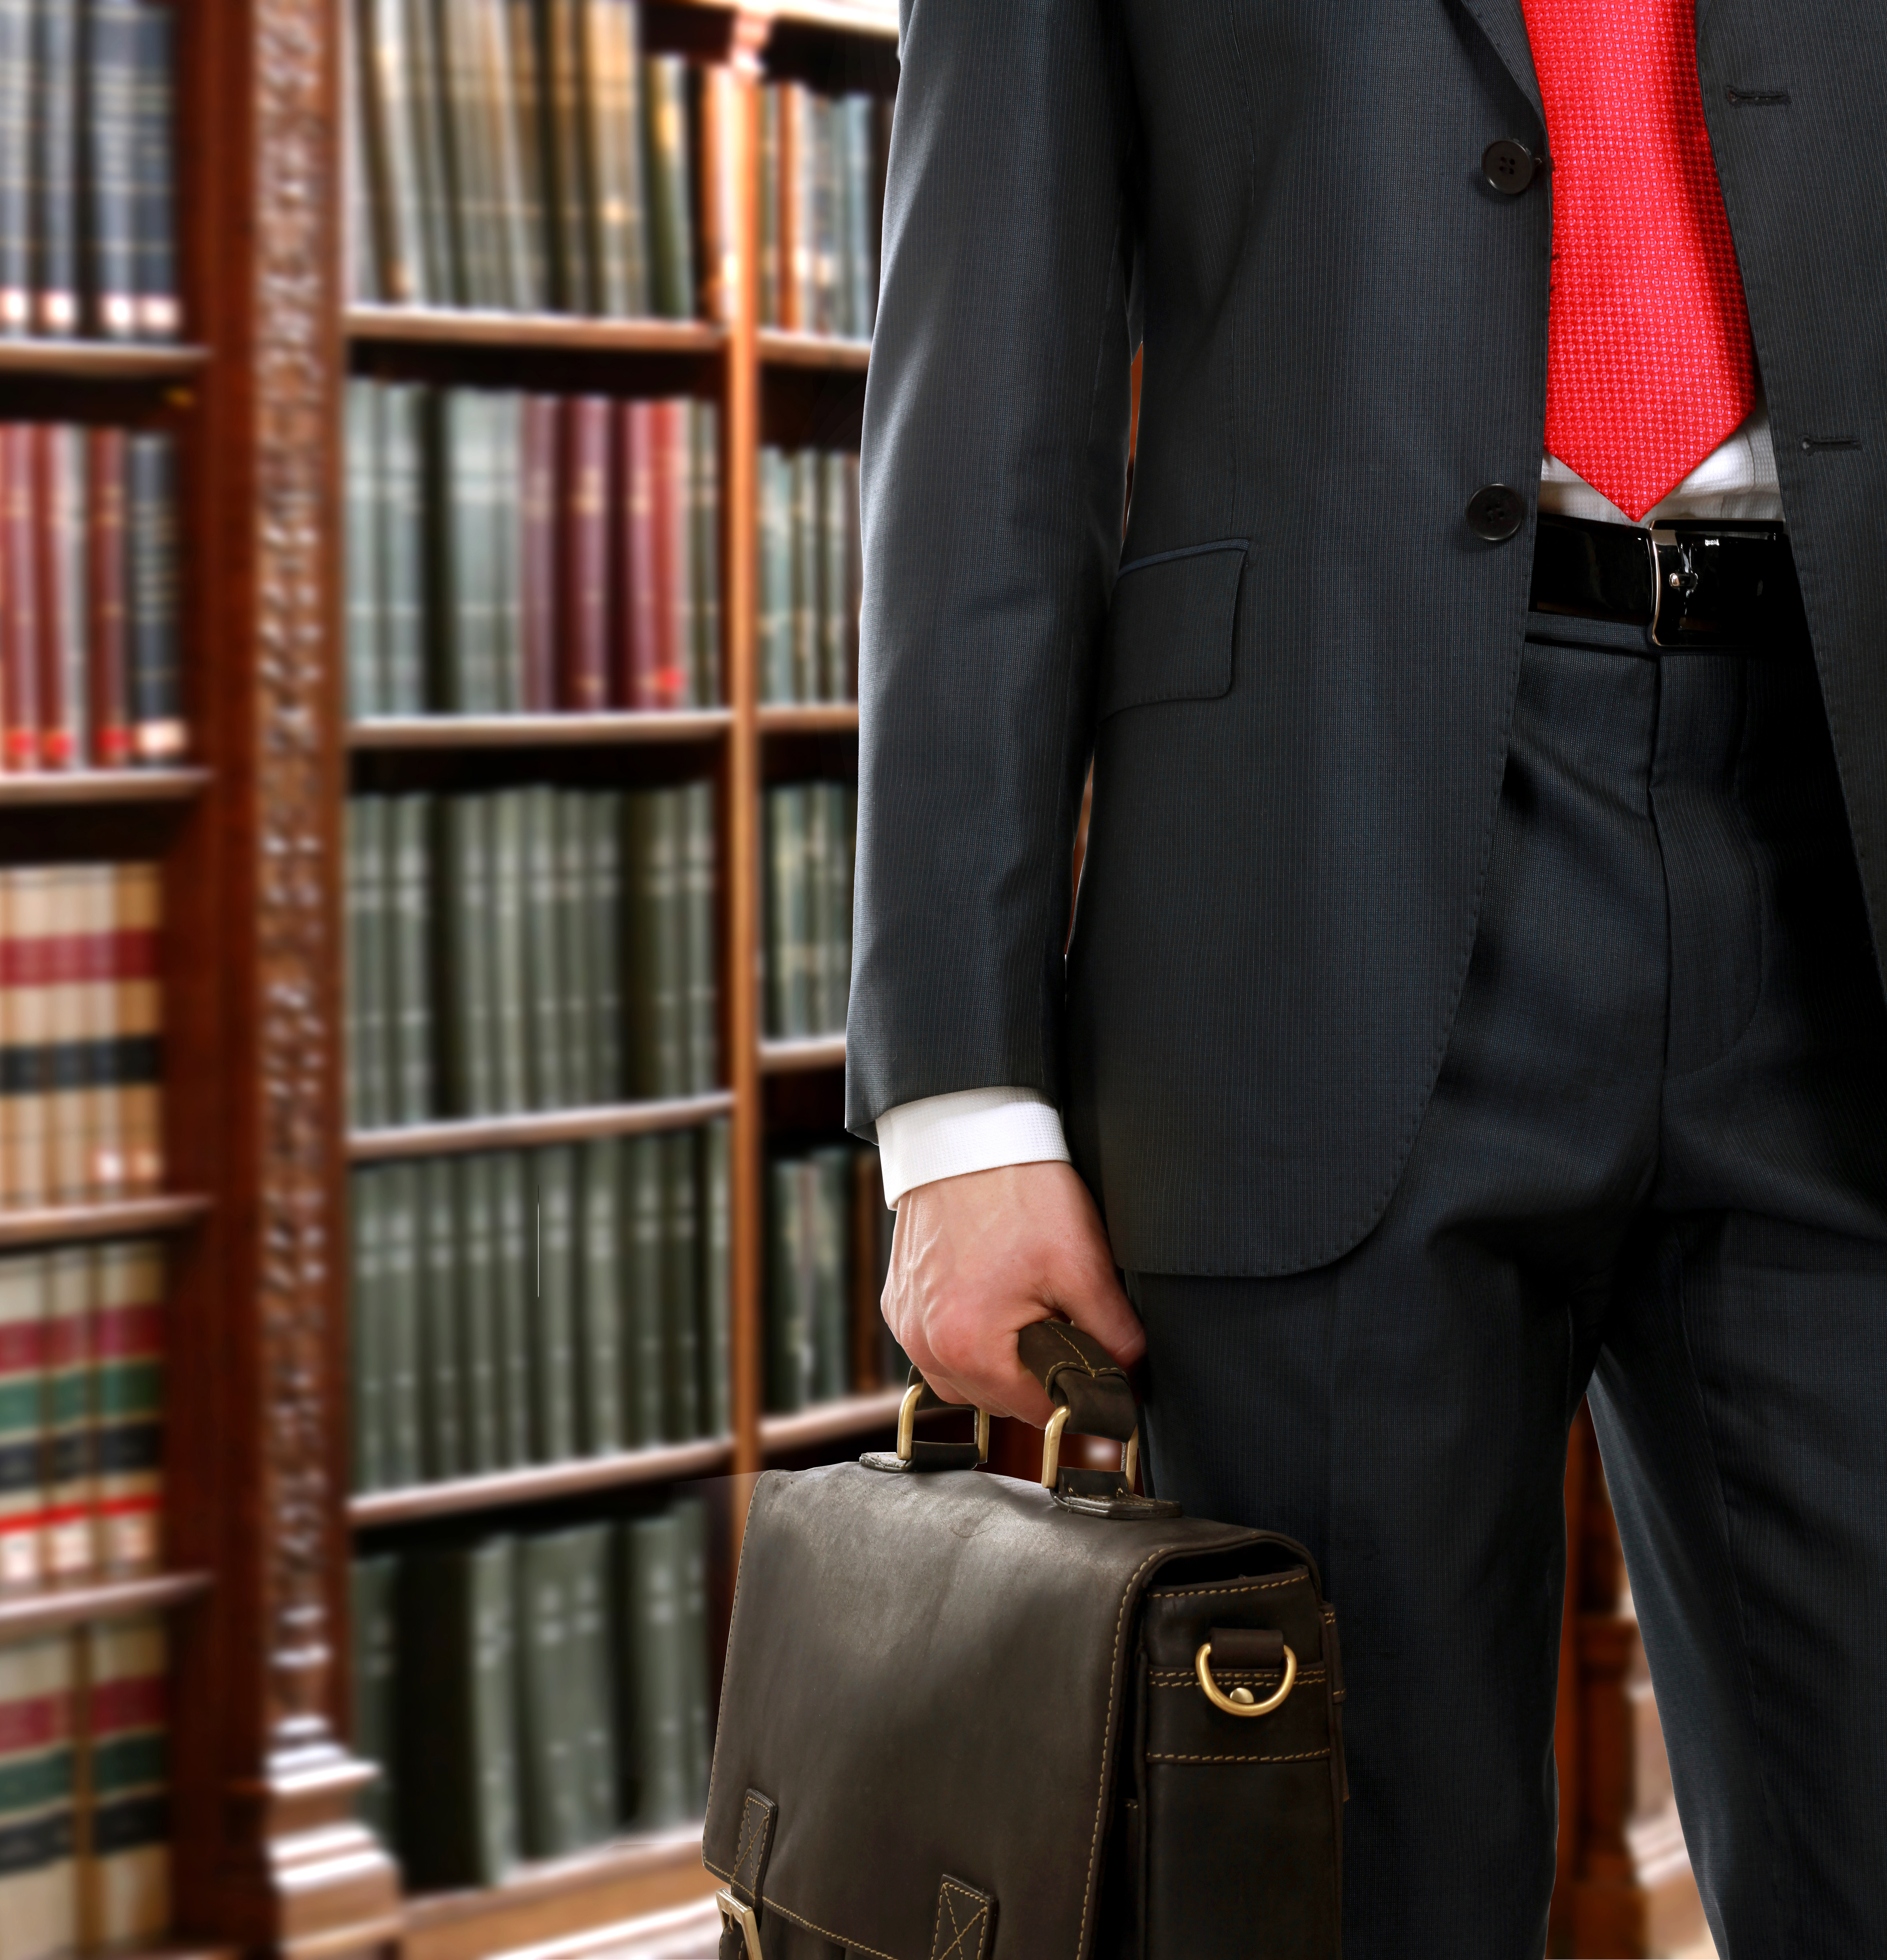 What are the Advantages & Disadvantages of using a Public Defender?